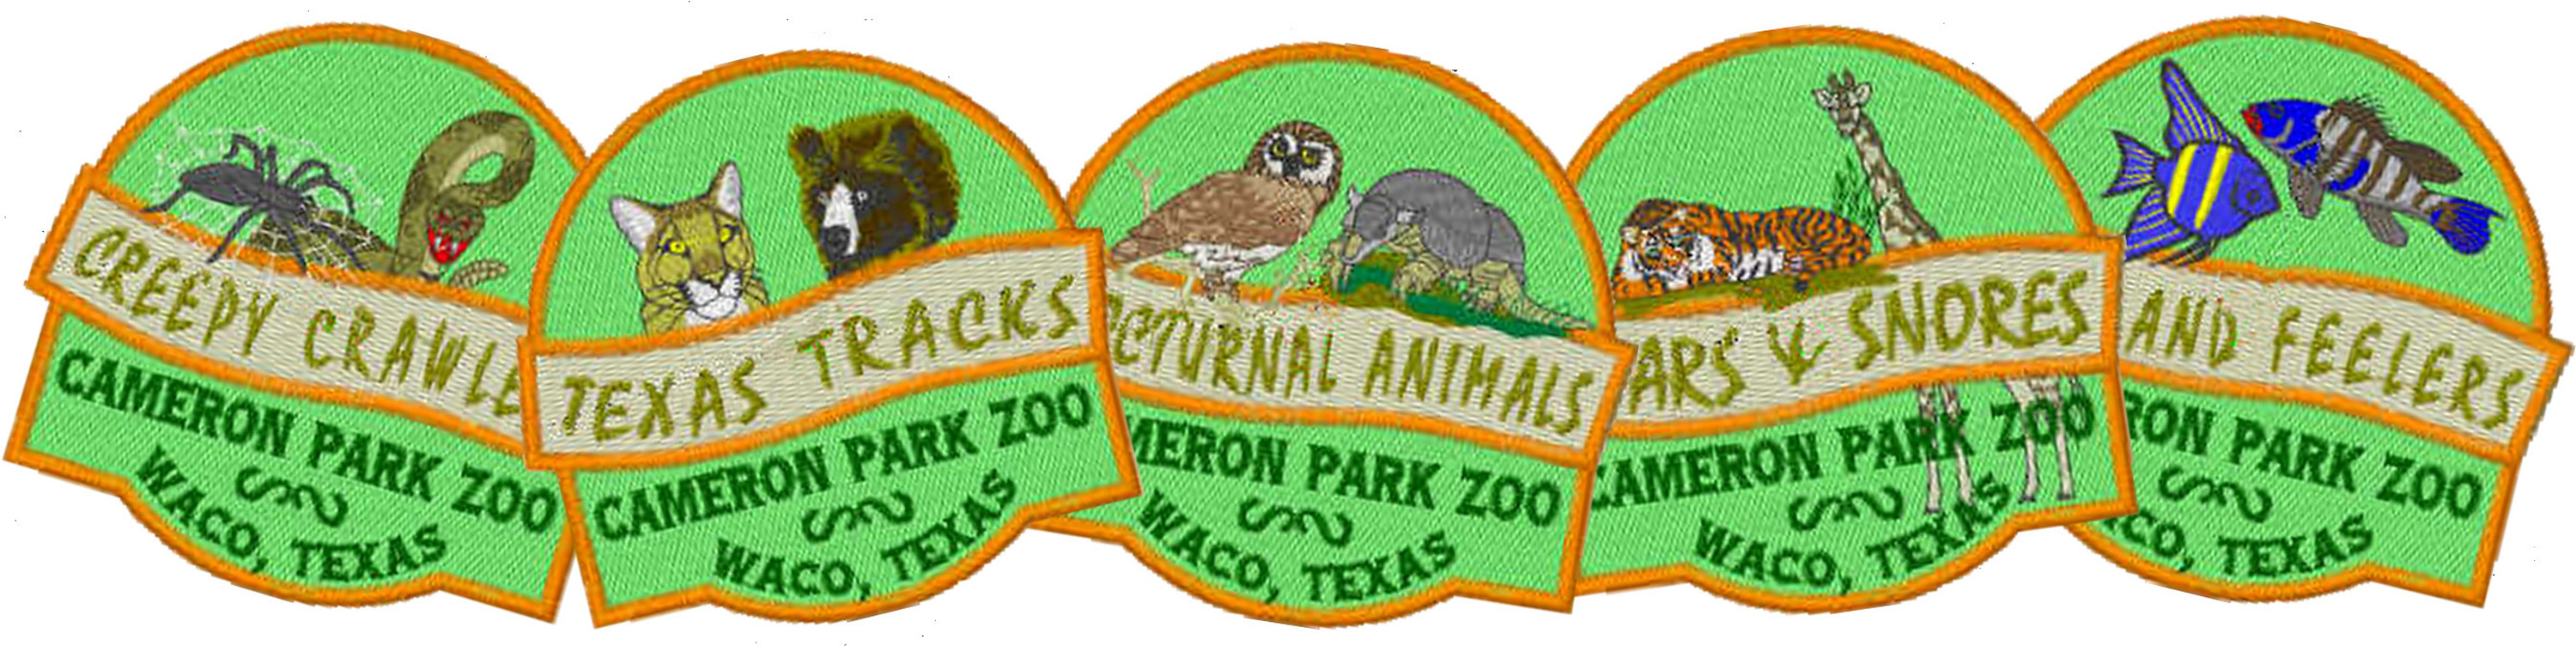 Snooze patches